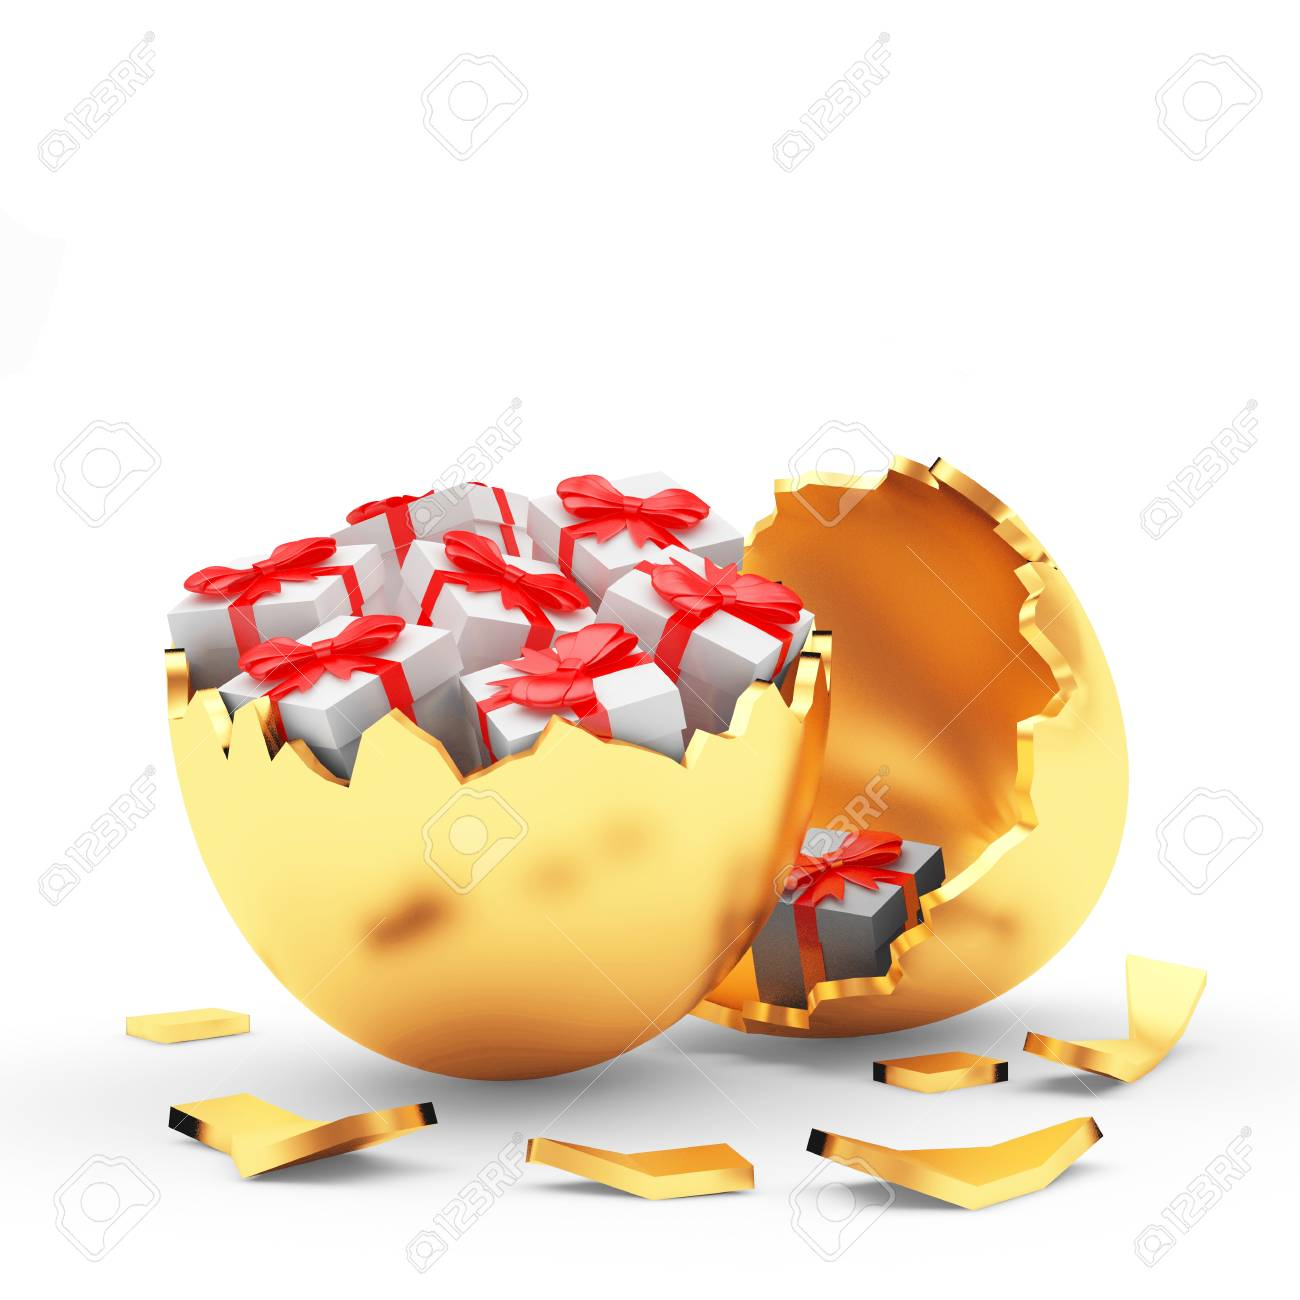 Broken golden easter egg with gift boxes inside isolated on white broken golden easter egg with gift boxes inside isolated on white 3d illustration stock illustration negle Choice Image